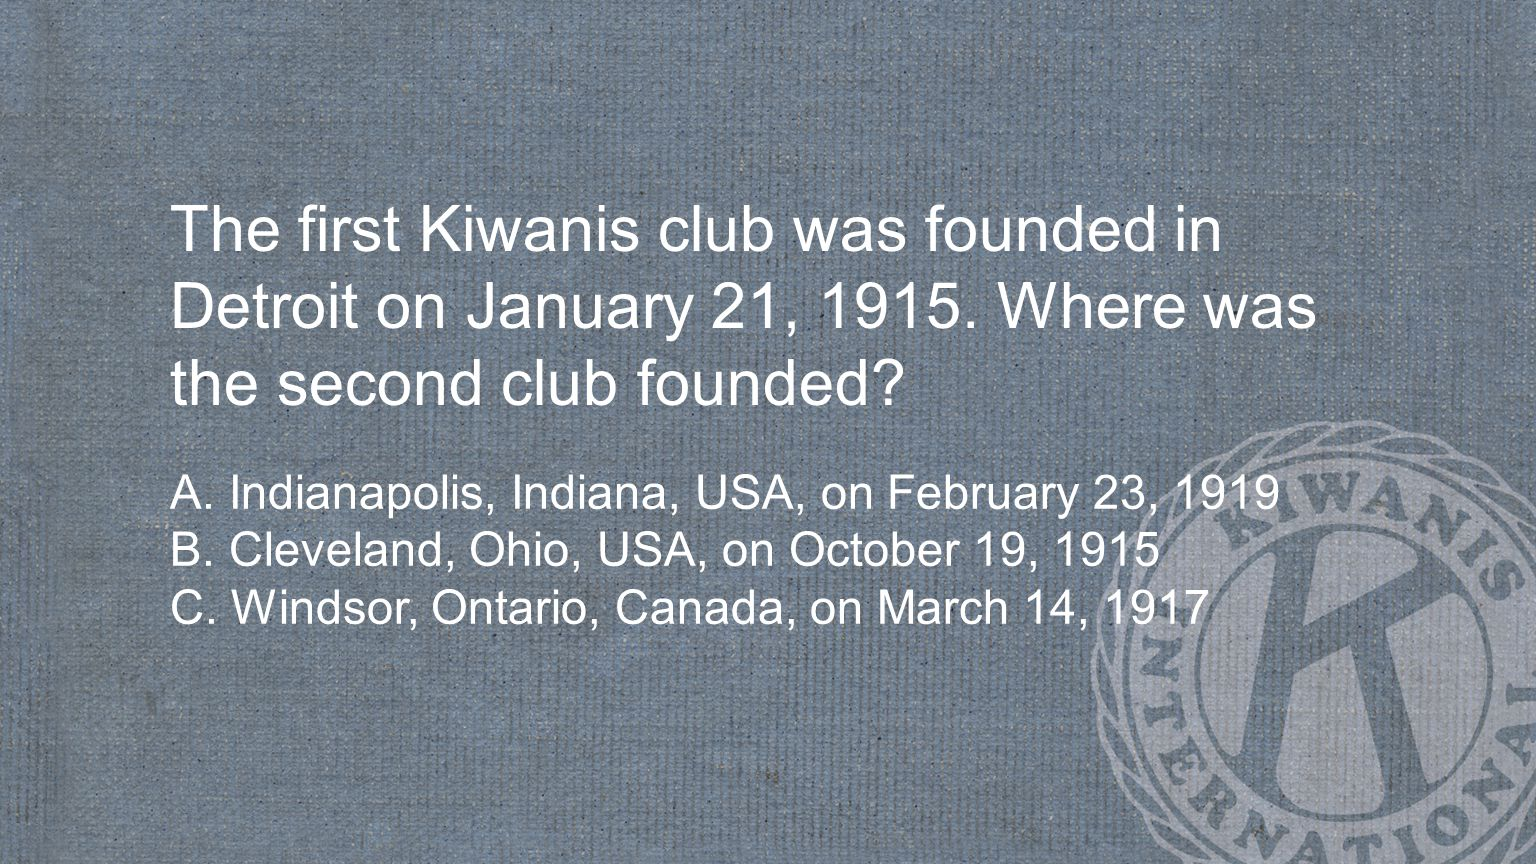 The first Kiwanis club was founded in Detroit on January 21, 1915